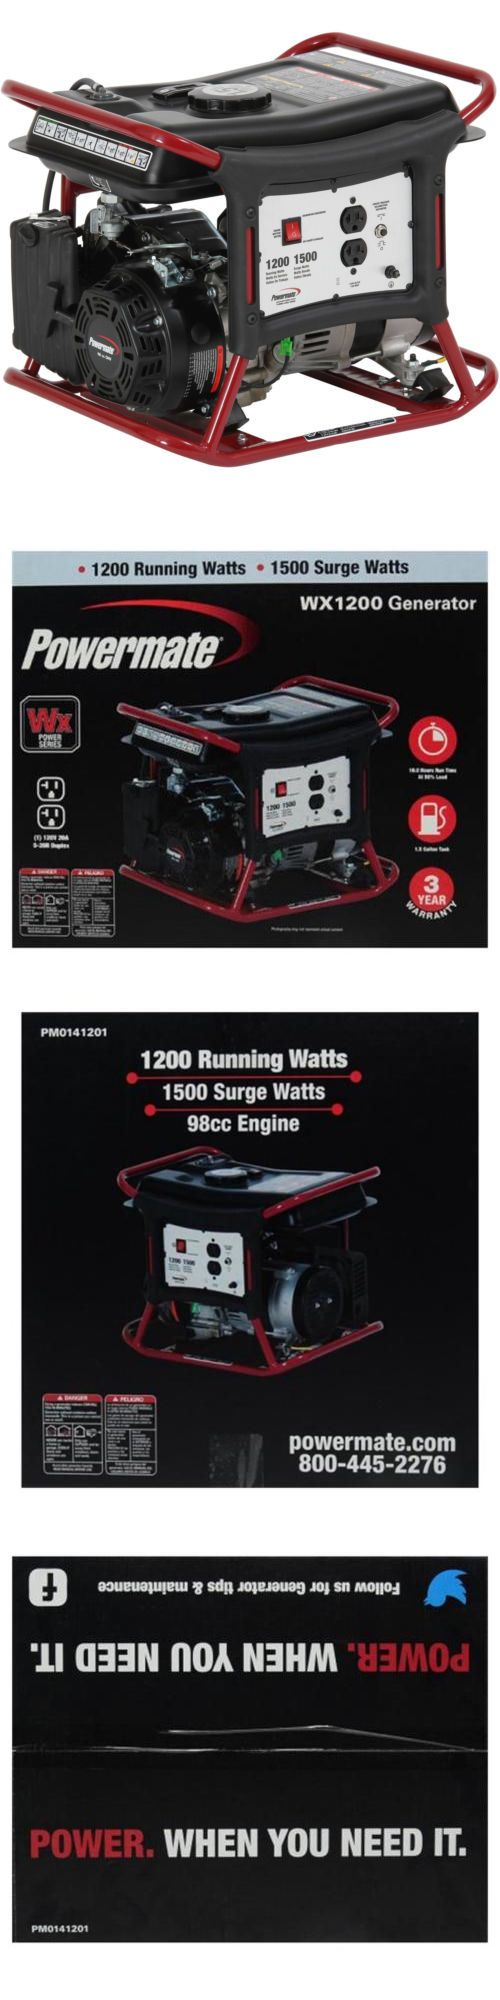 Generators and Heaters 16039: New Powermate Wx1200 Portable Generator Powermate Standby Home Power -> BUY IT NOW ONLY: $253.84 on eBay!